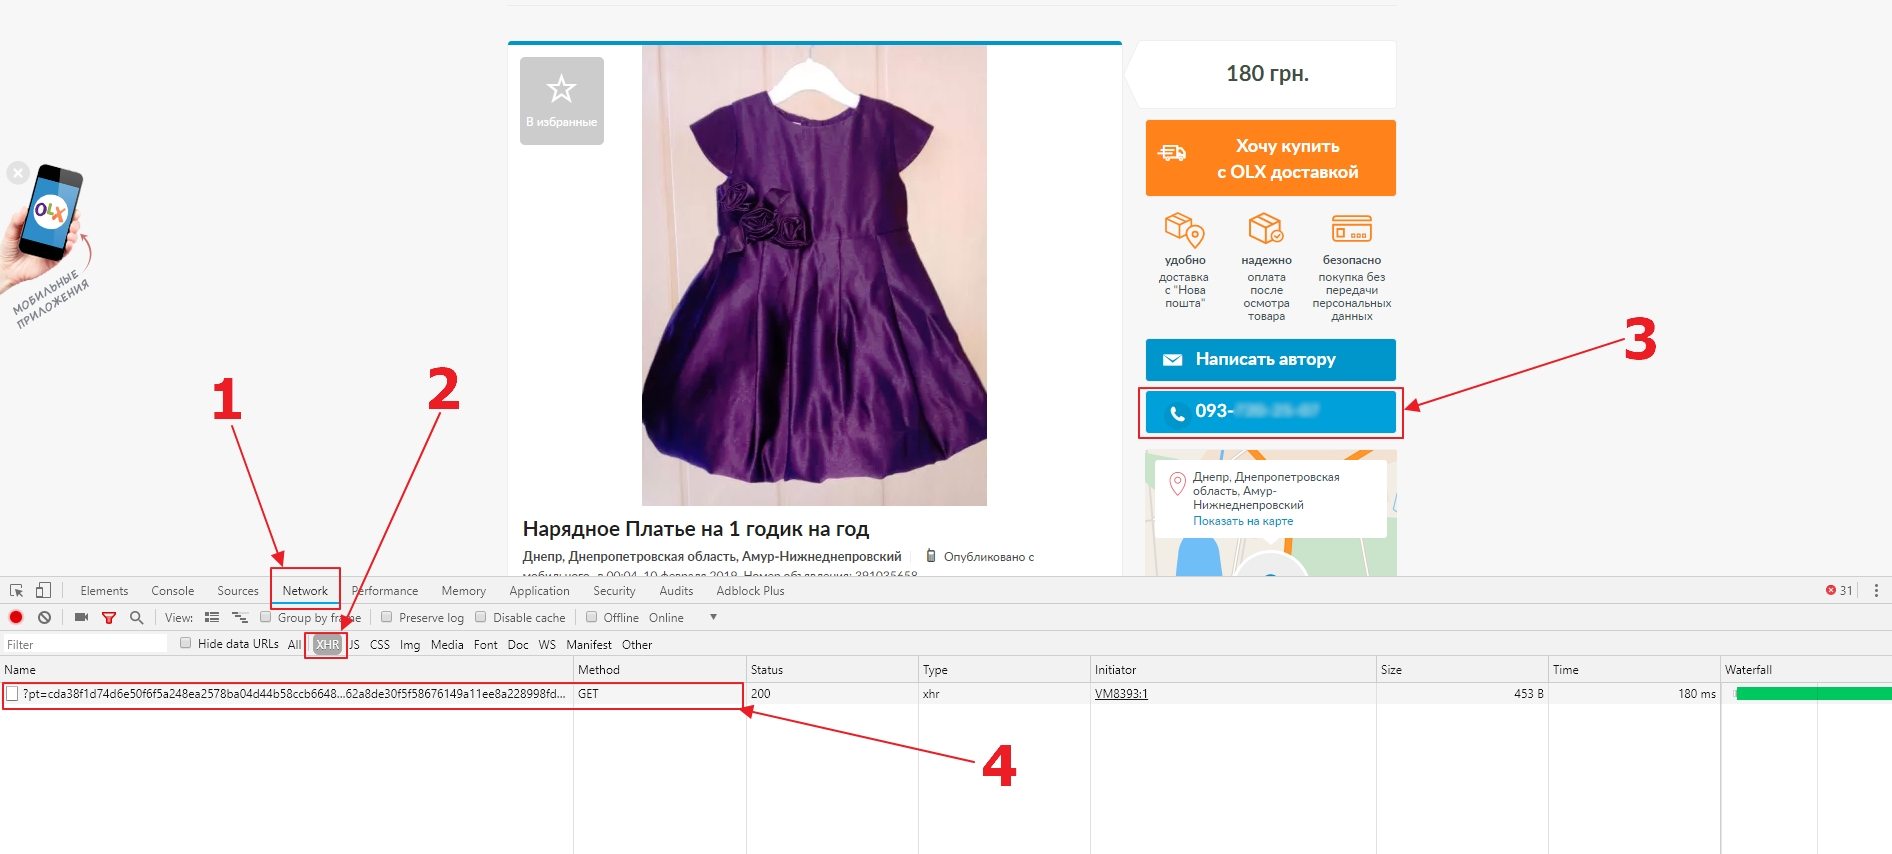 OLX: Catching XHR request for phone number retrieval